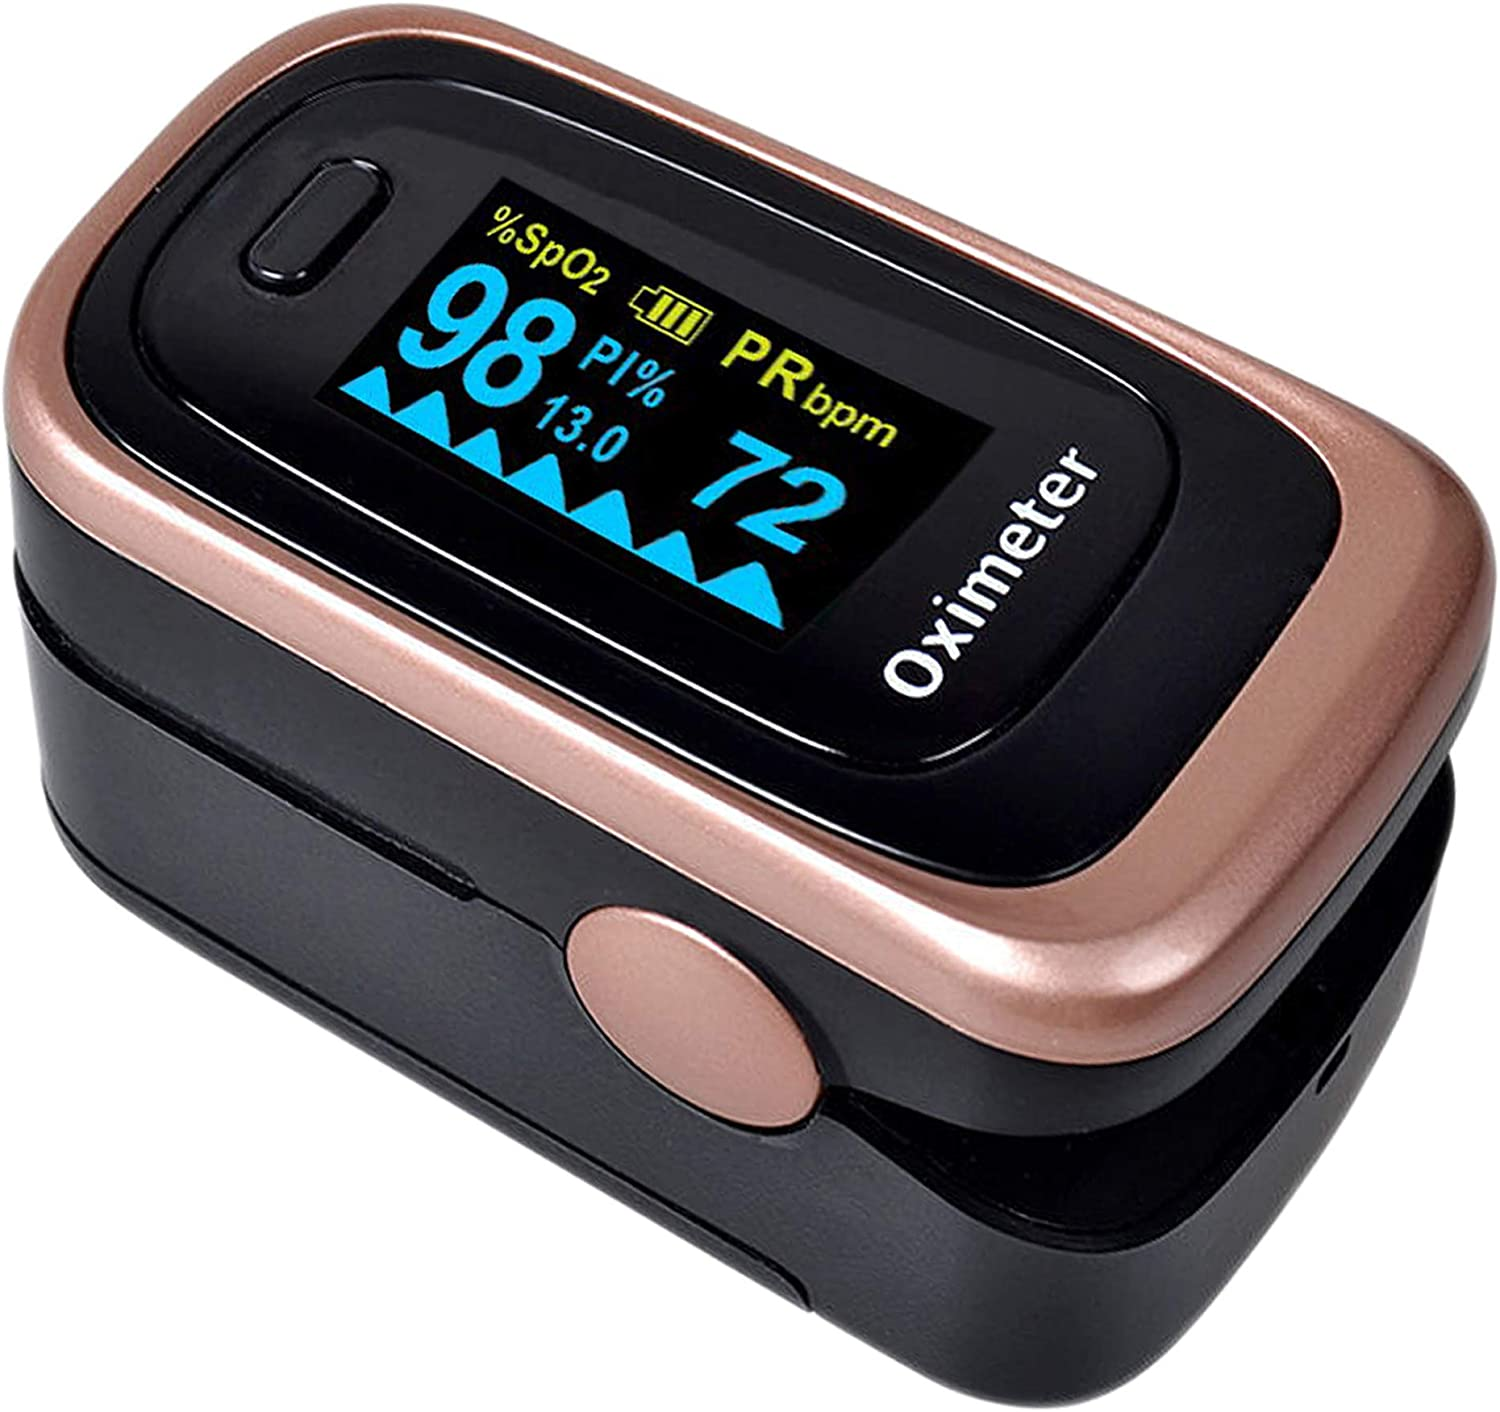 Oxygen Saturation Monitor, Wrinery Premium Pulse Oximeter Fingertip, Oxygen Monitor, O2 Saturation Monitor, OLED Portable Oximetry with Batteries, Lanyard Rose gold-Royal black